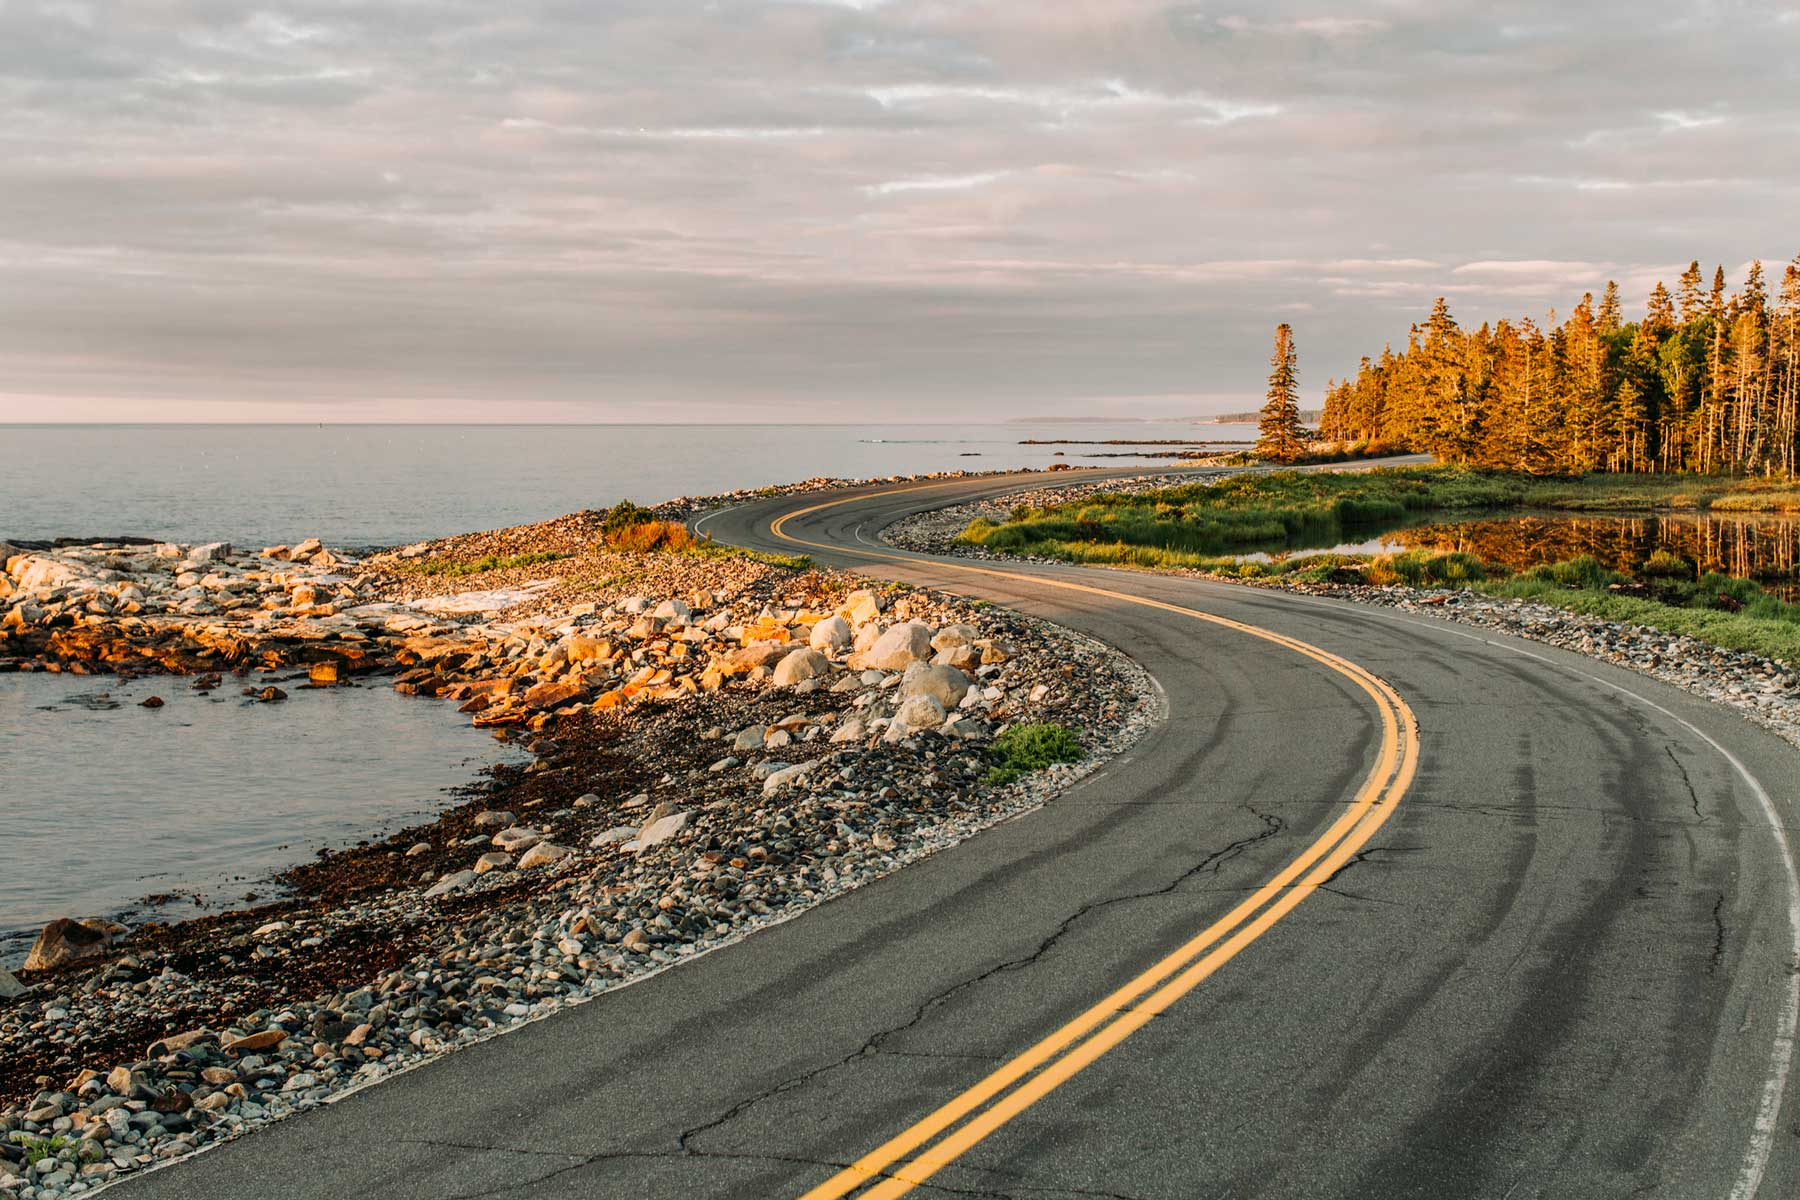 Twisting road hugs shoreline at sunrise, Acadia National Park, Maine